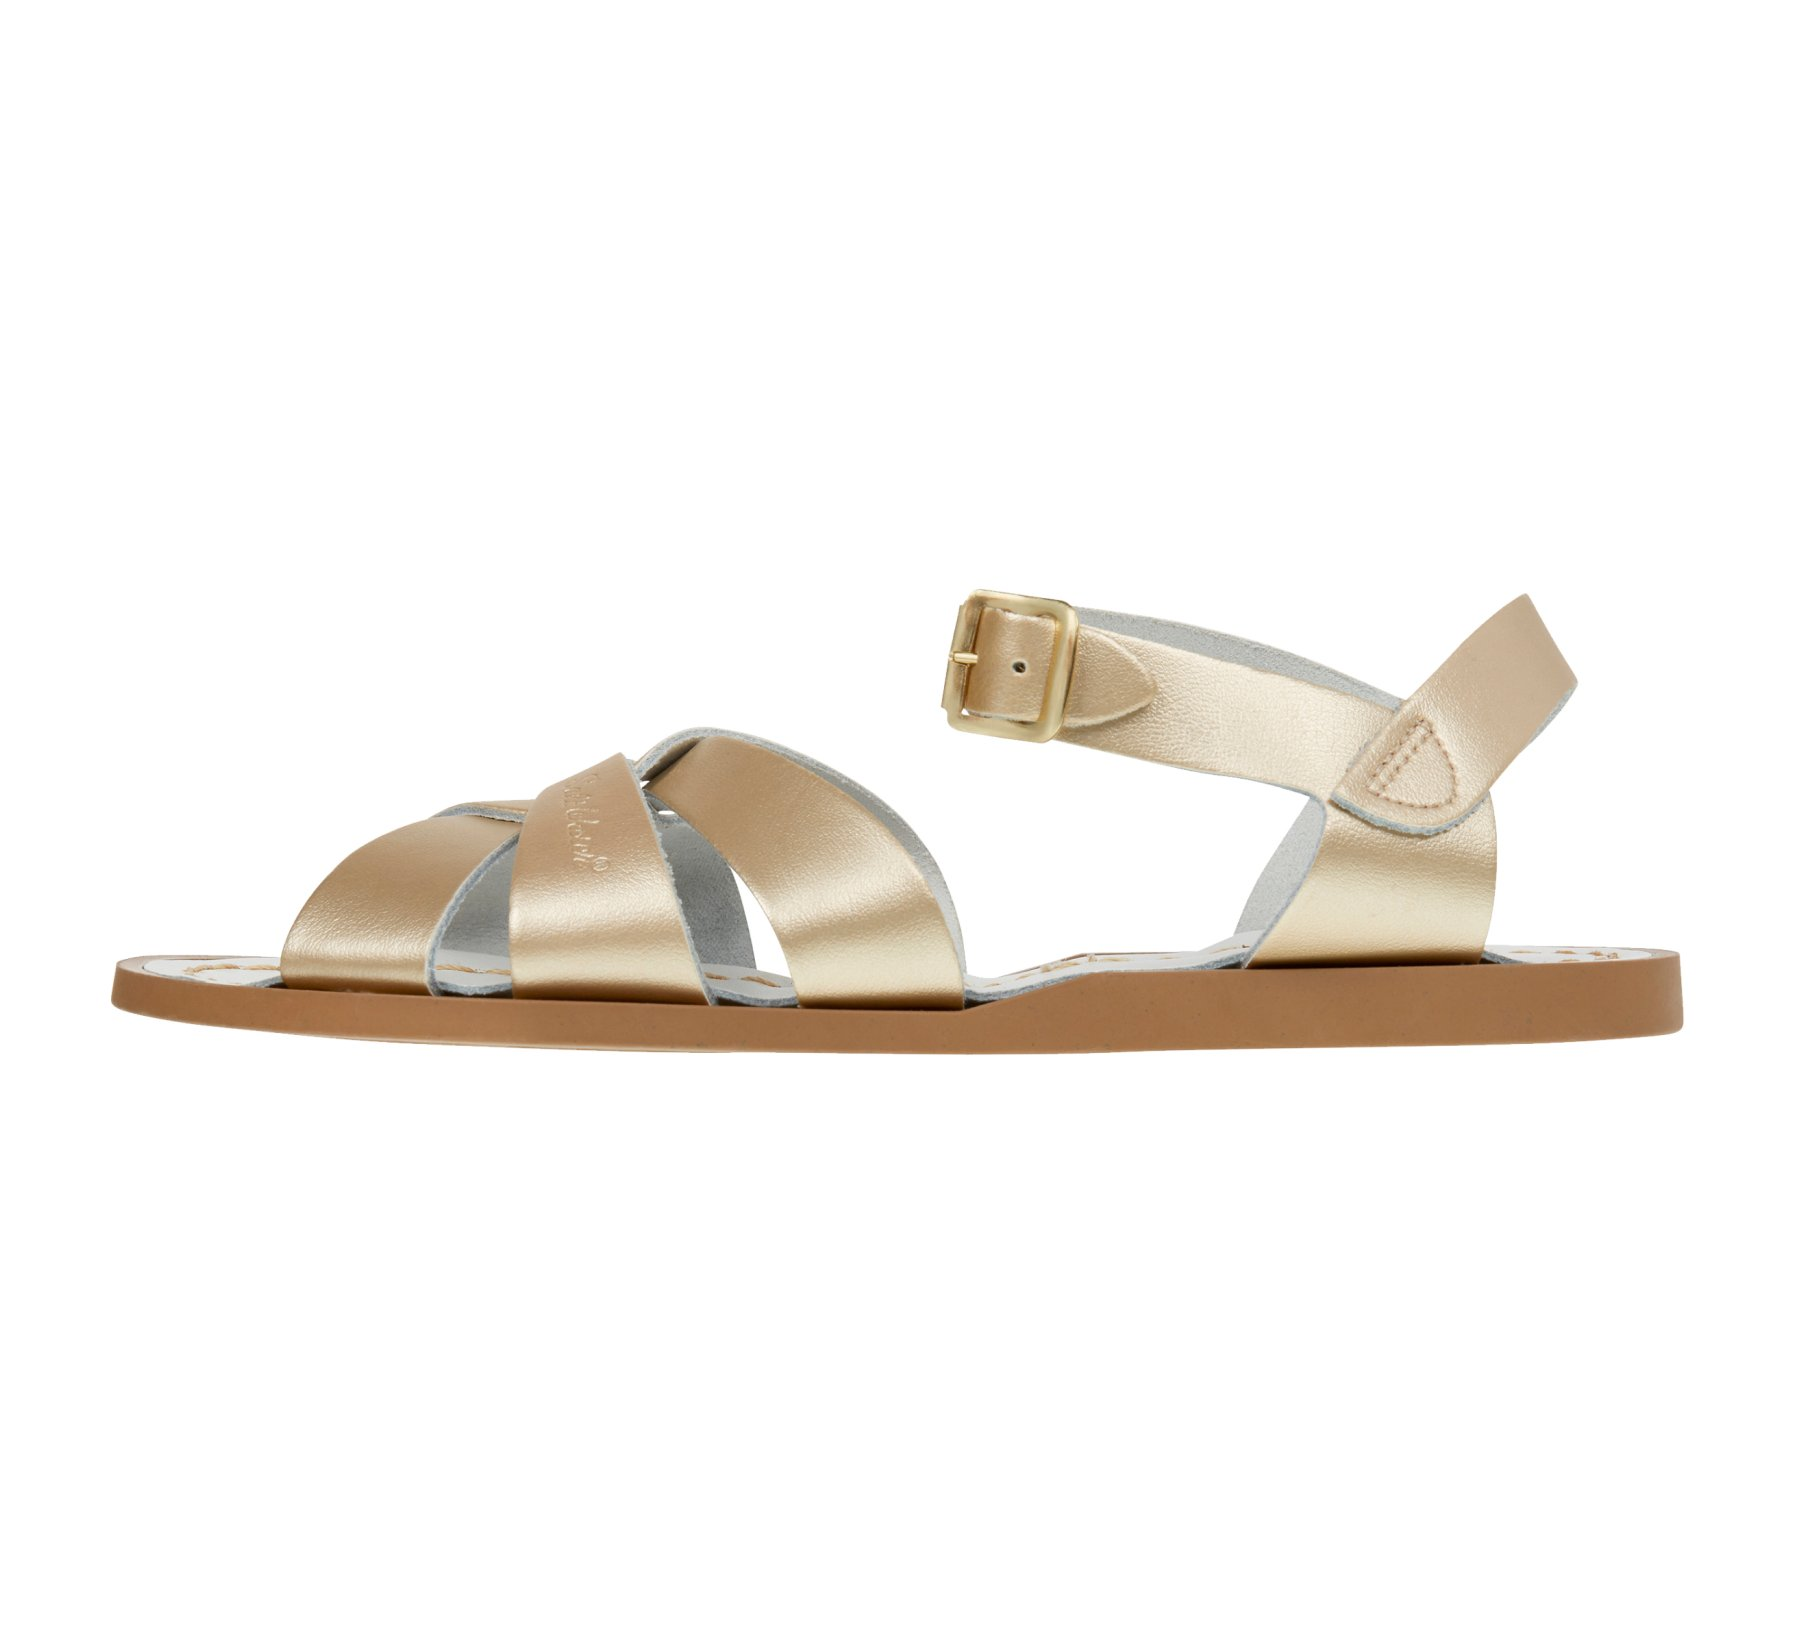 Original in Gold - Salt Water Sandals